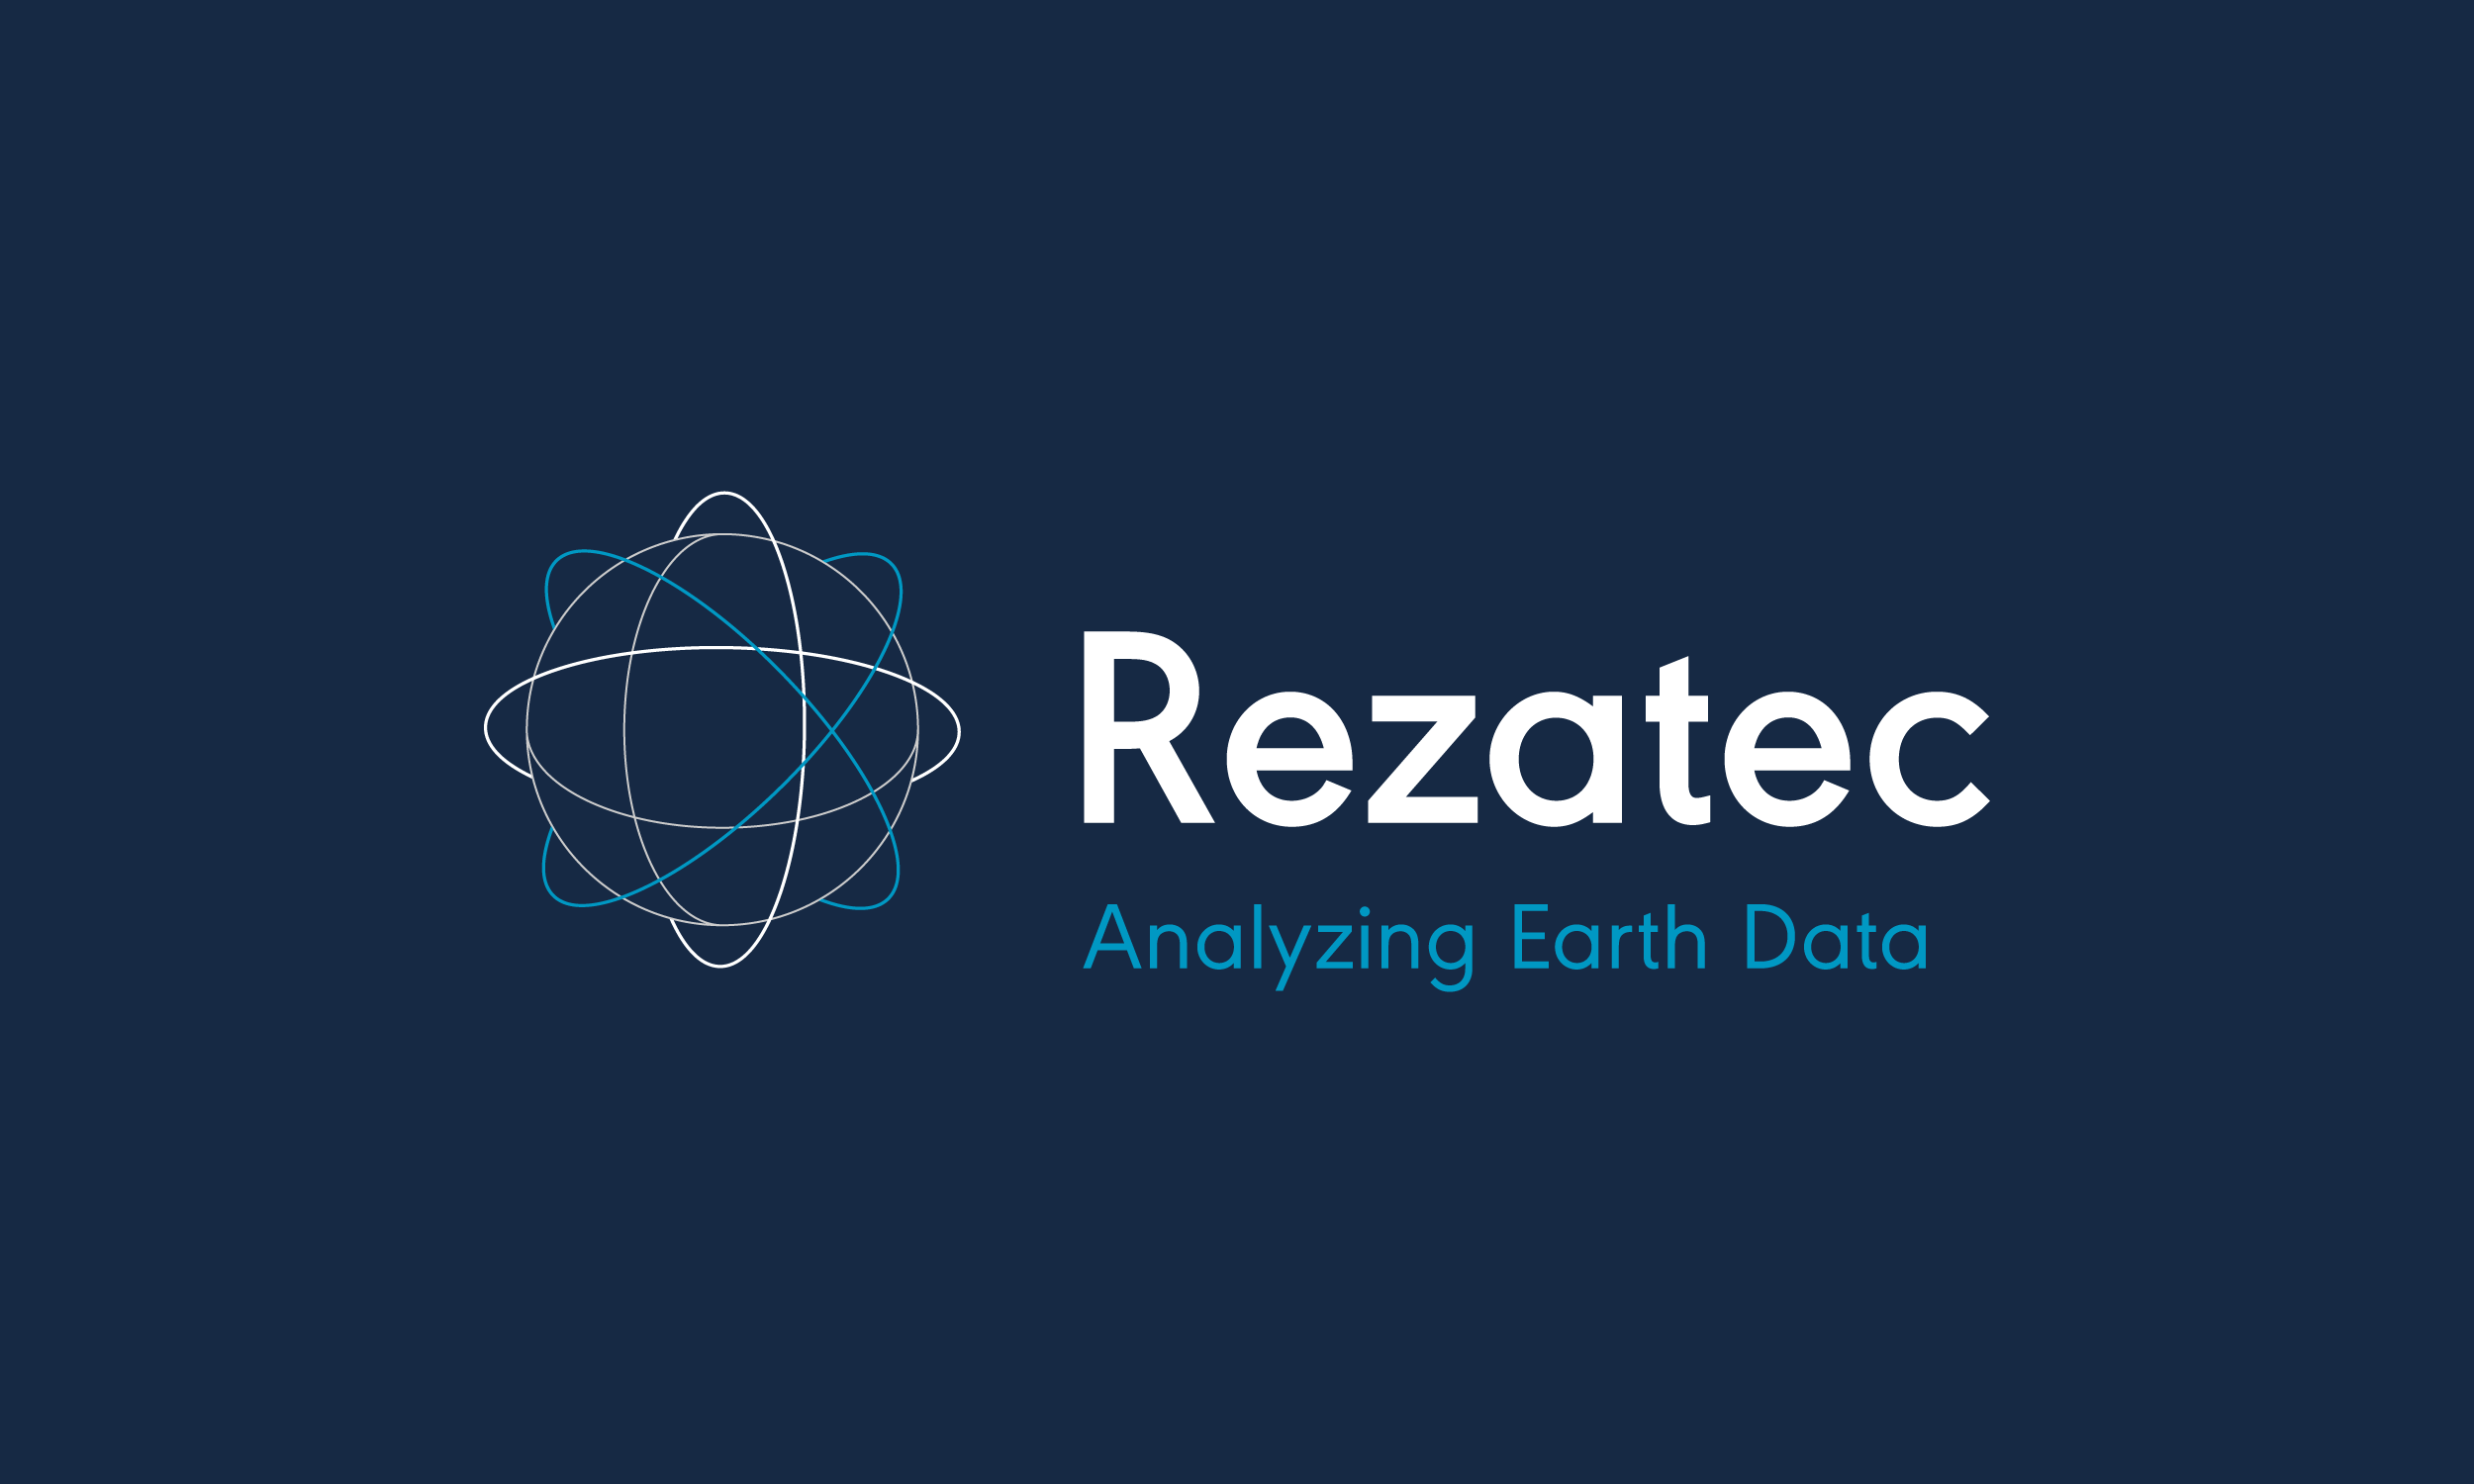 Logo Design and Brand Identity - Rezatec